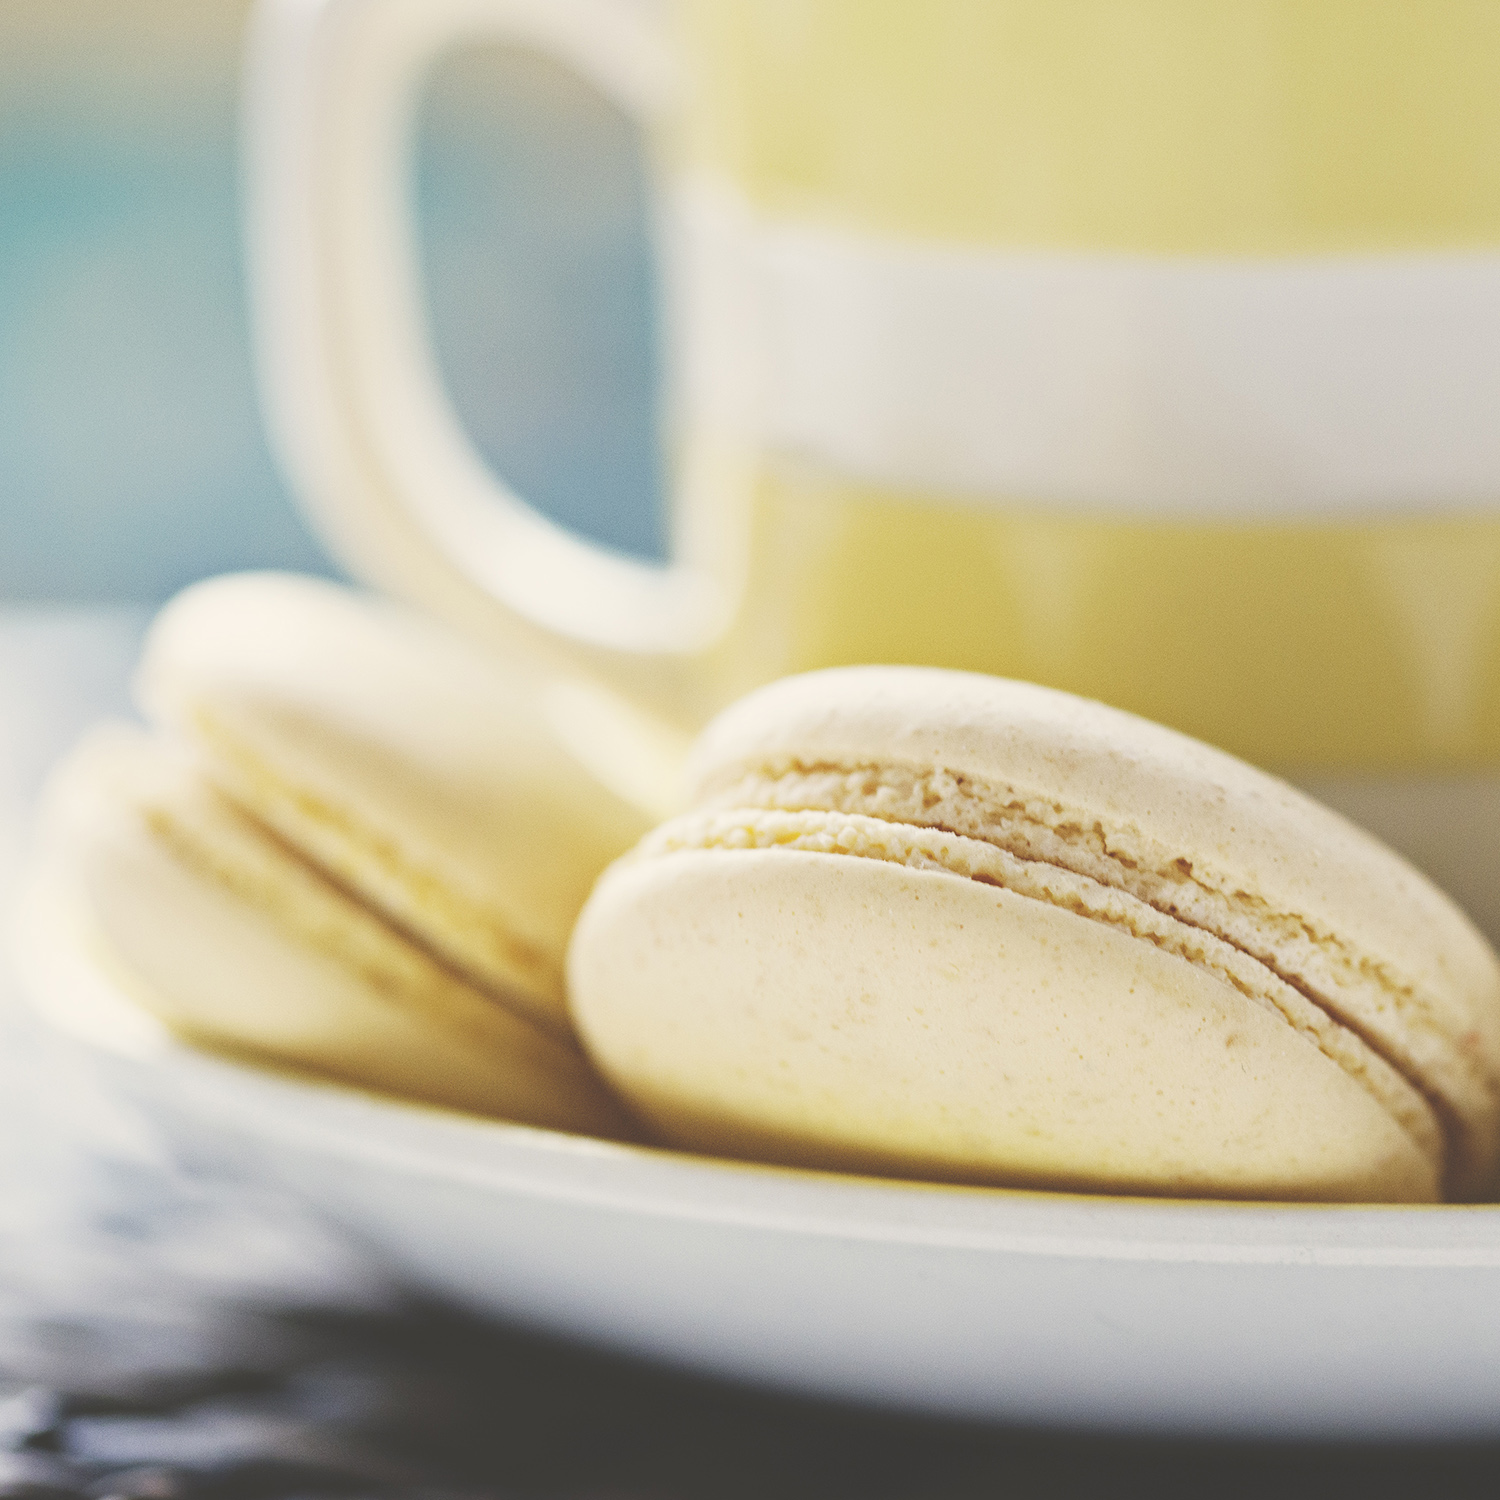 Tea with Macarons